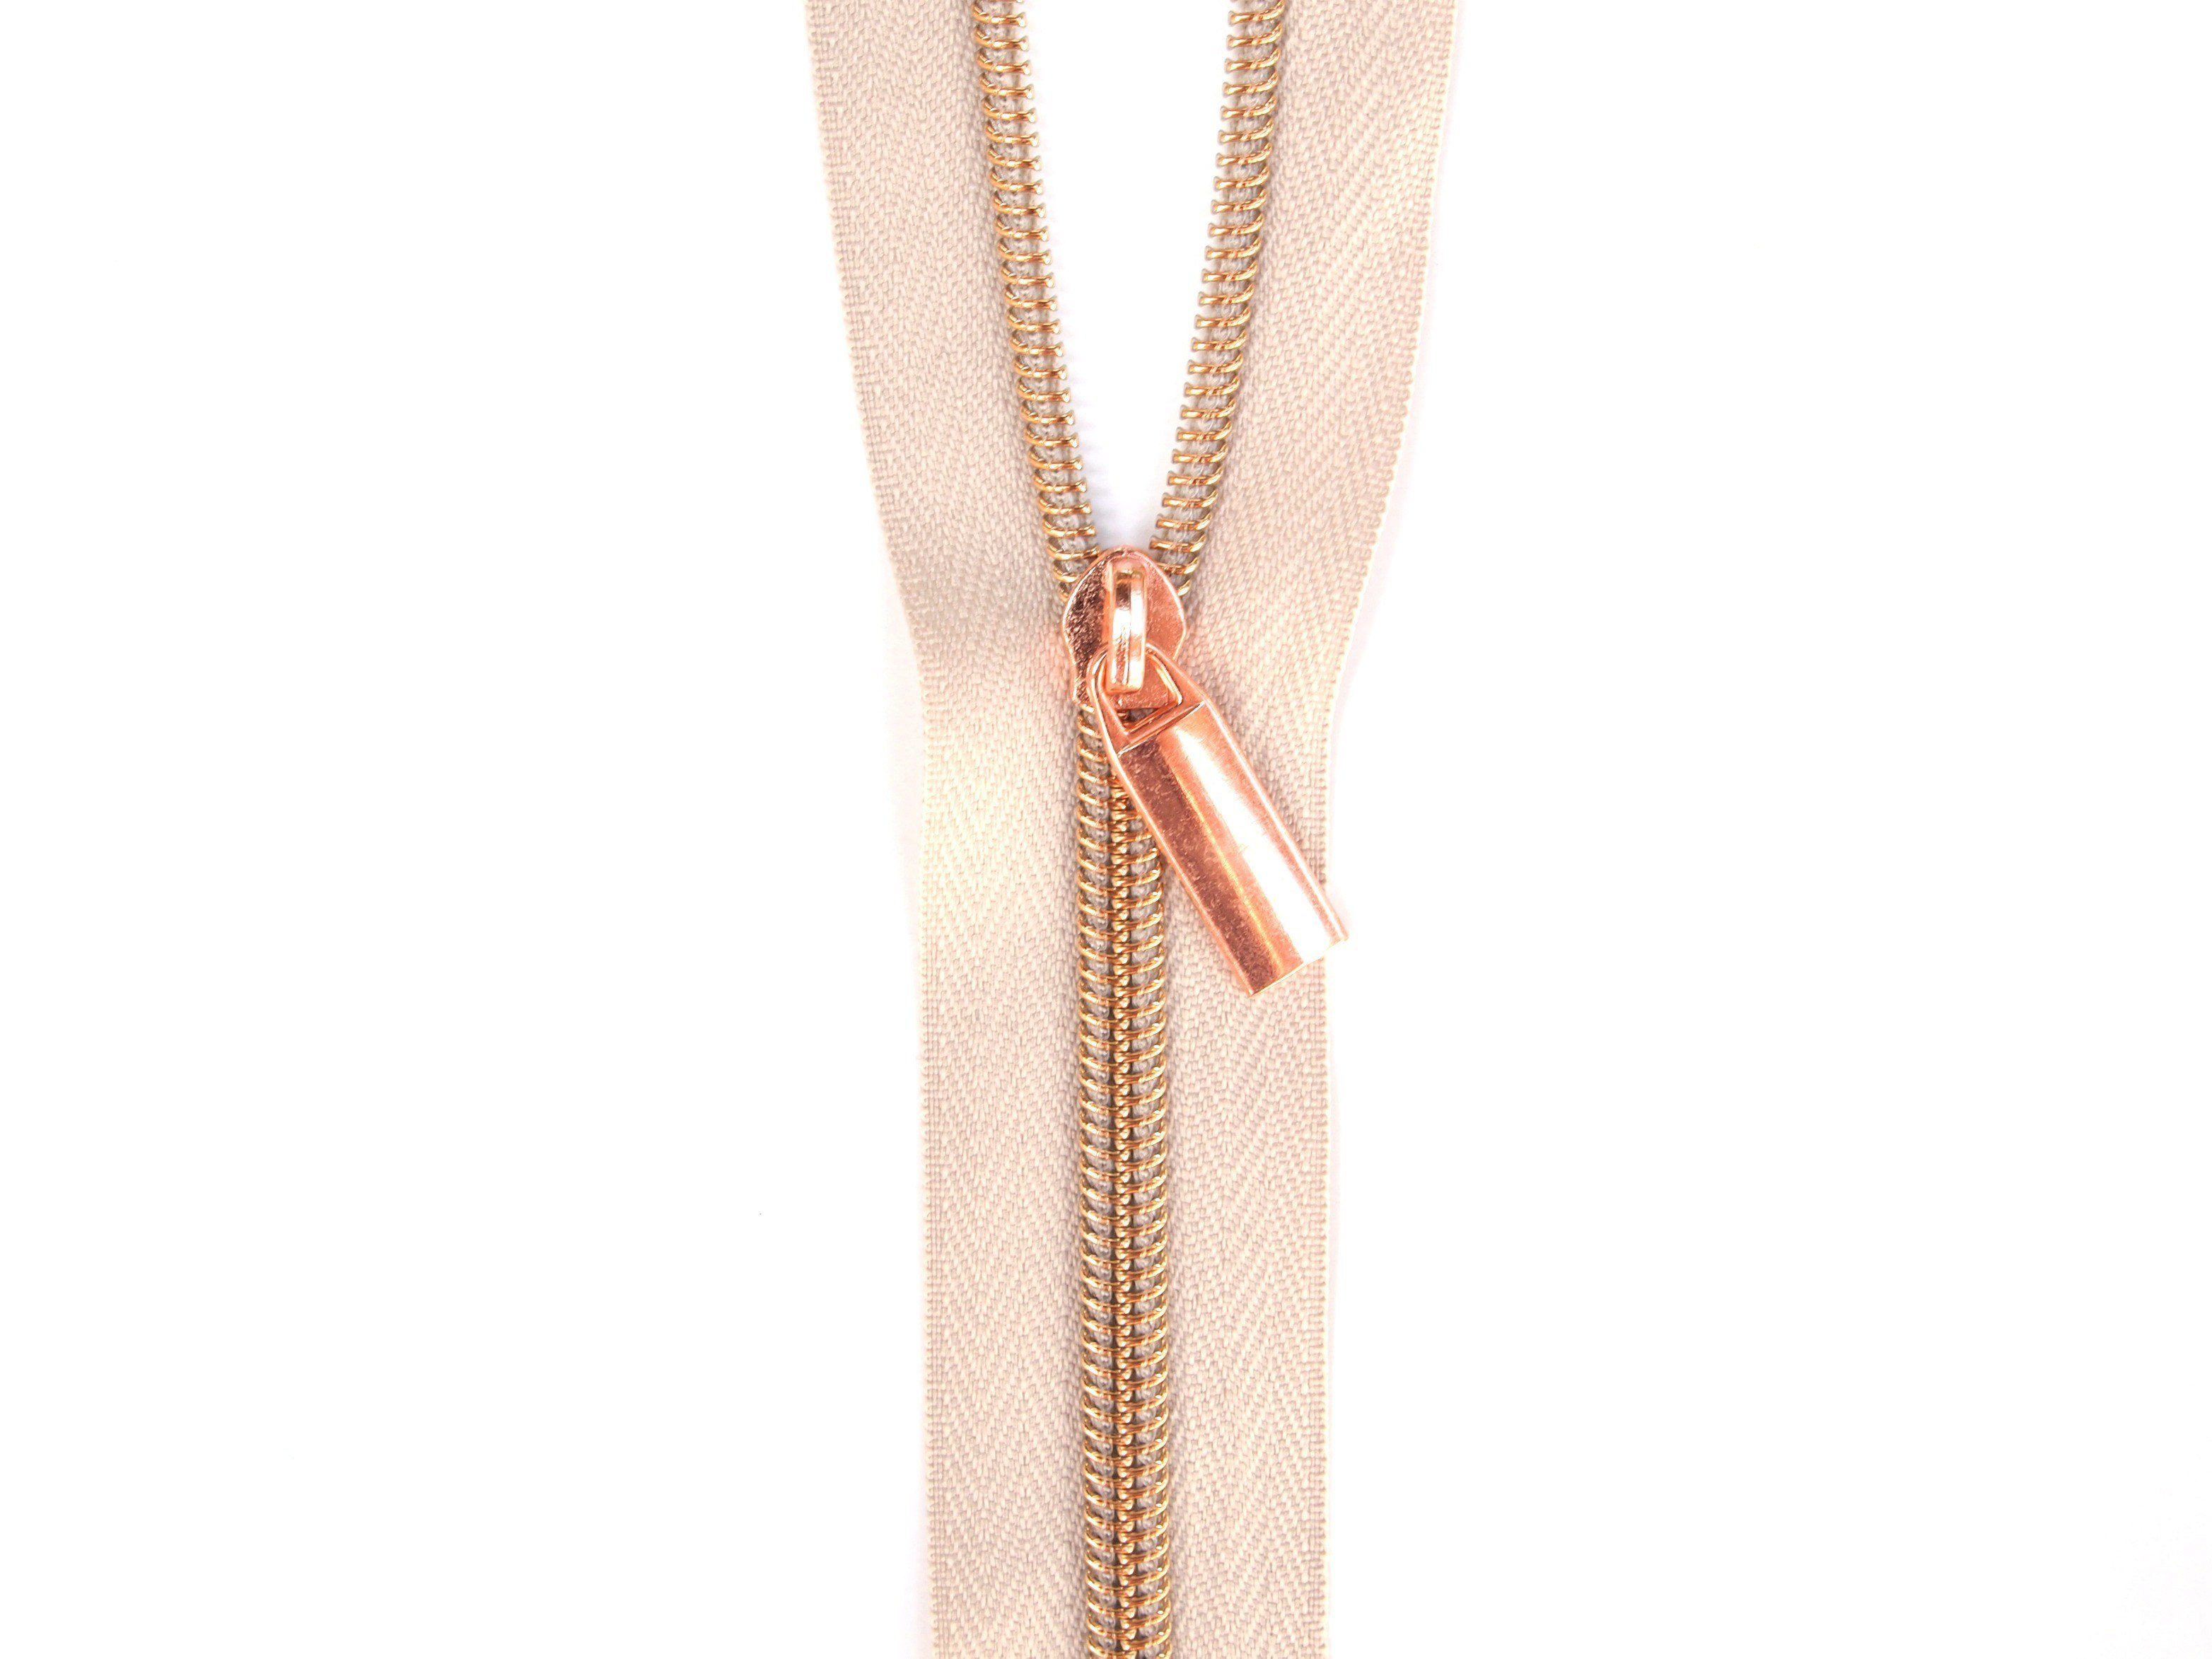 Sallie Tomato #5 Zippers by the Yard Beige With Copper Coils SaToZipBe+C